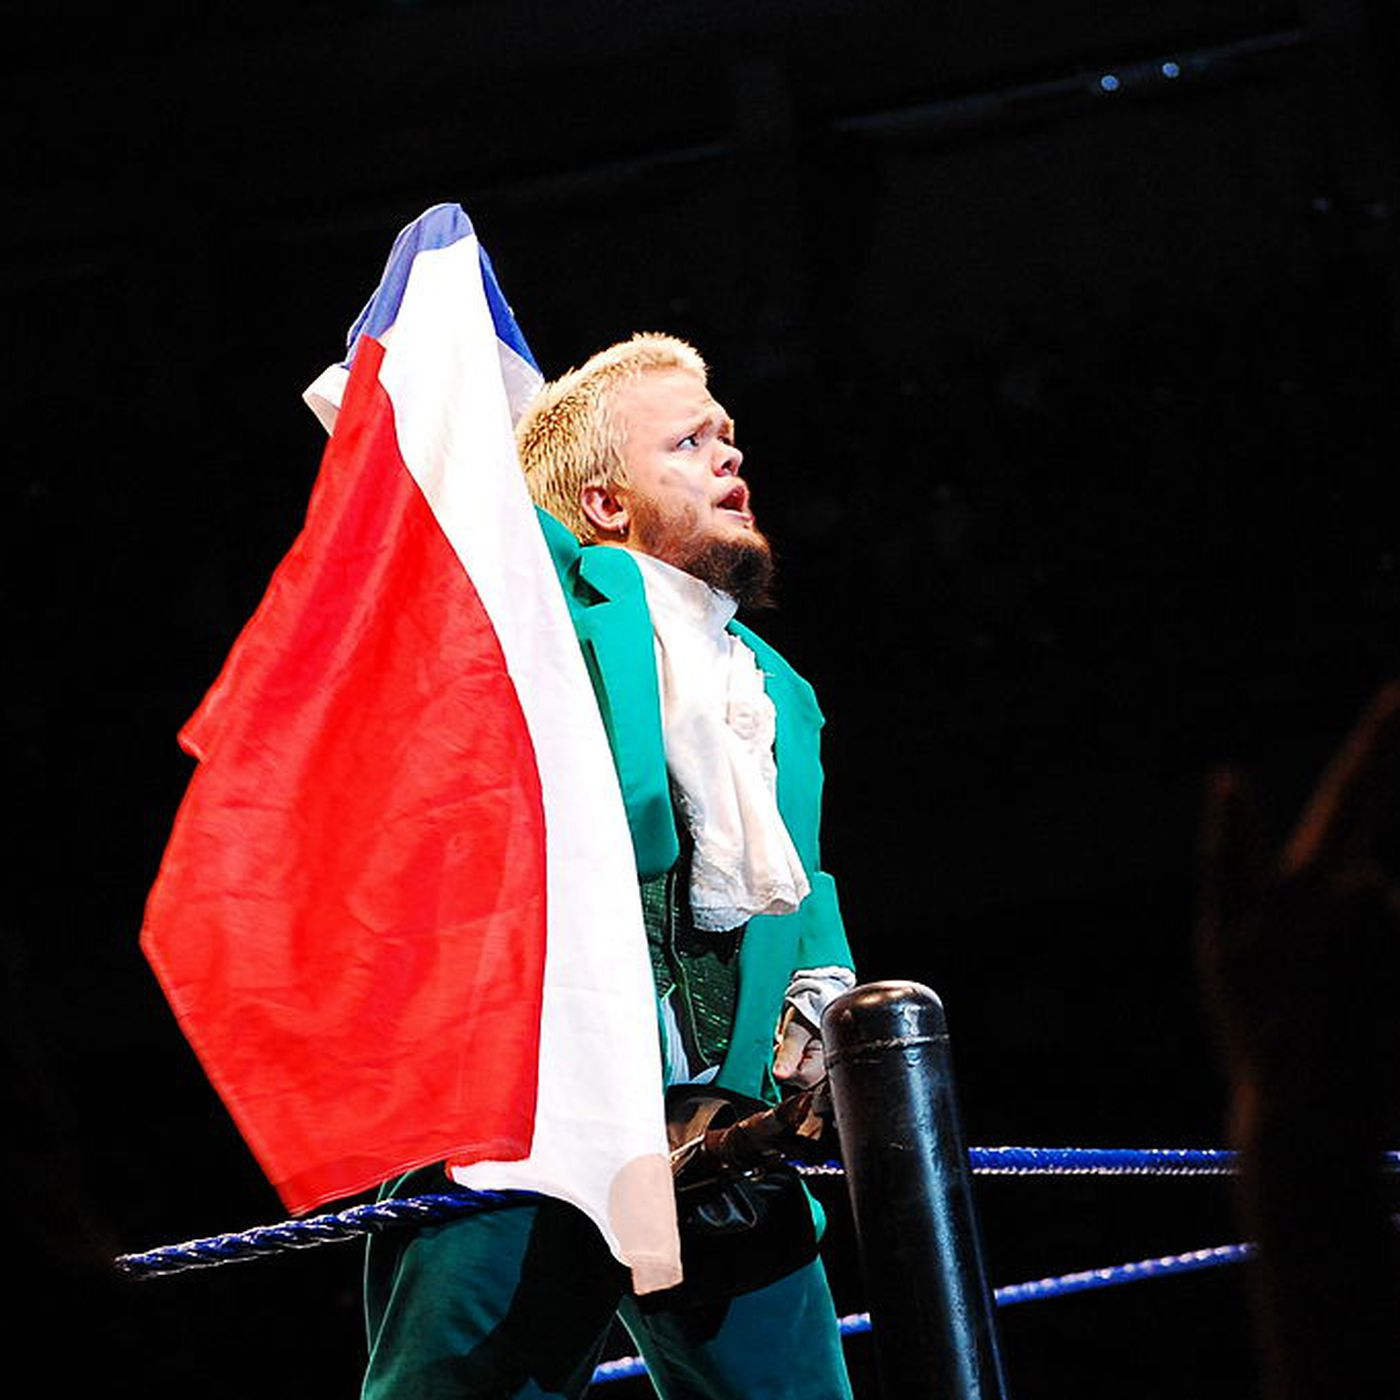 Hornswoggle tells story of having heat with The Rock - Cageside Seats